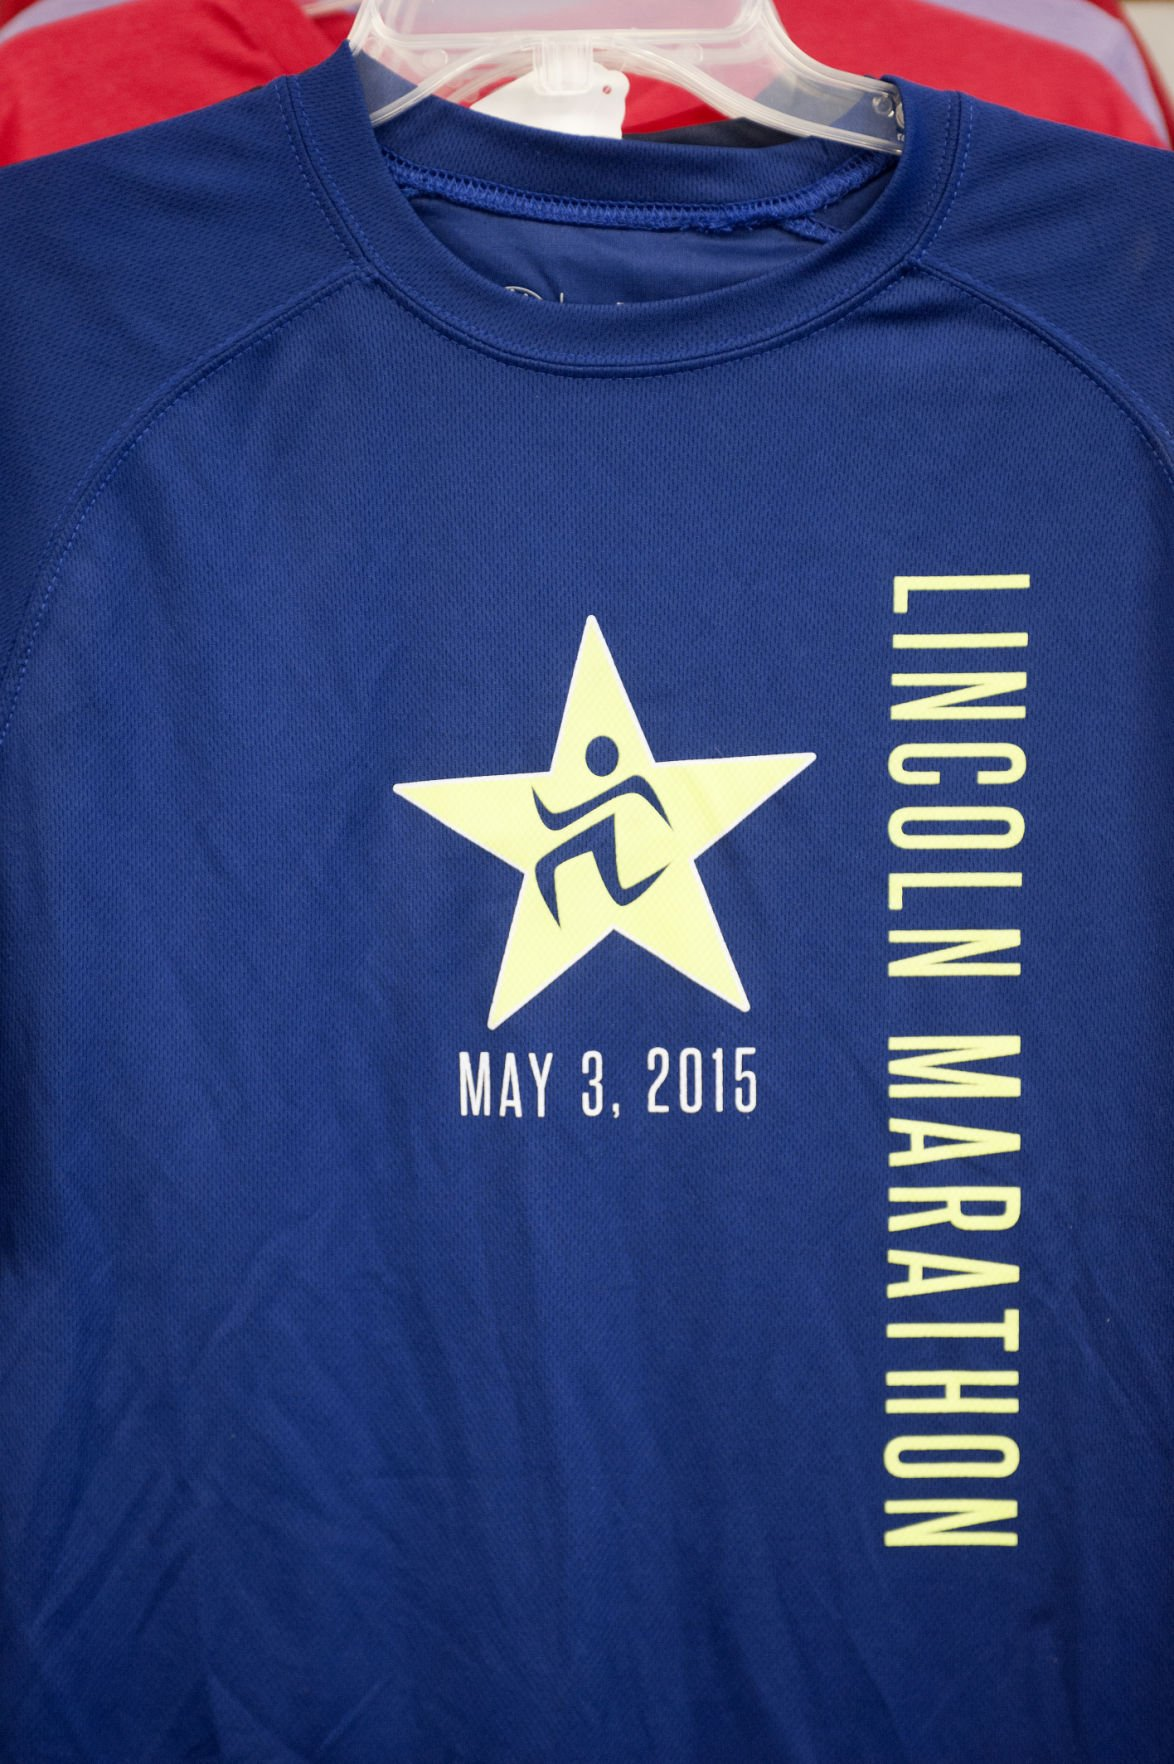 New screen printing company scores coup with marathon deal for Marathon t shirt printing